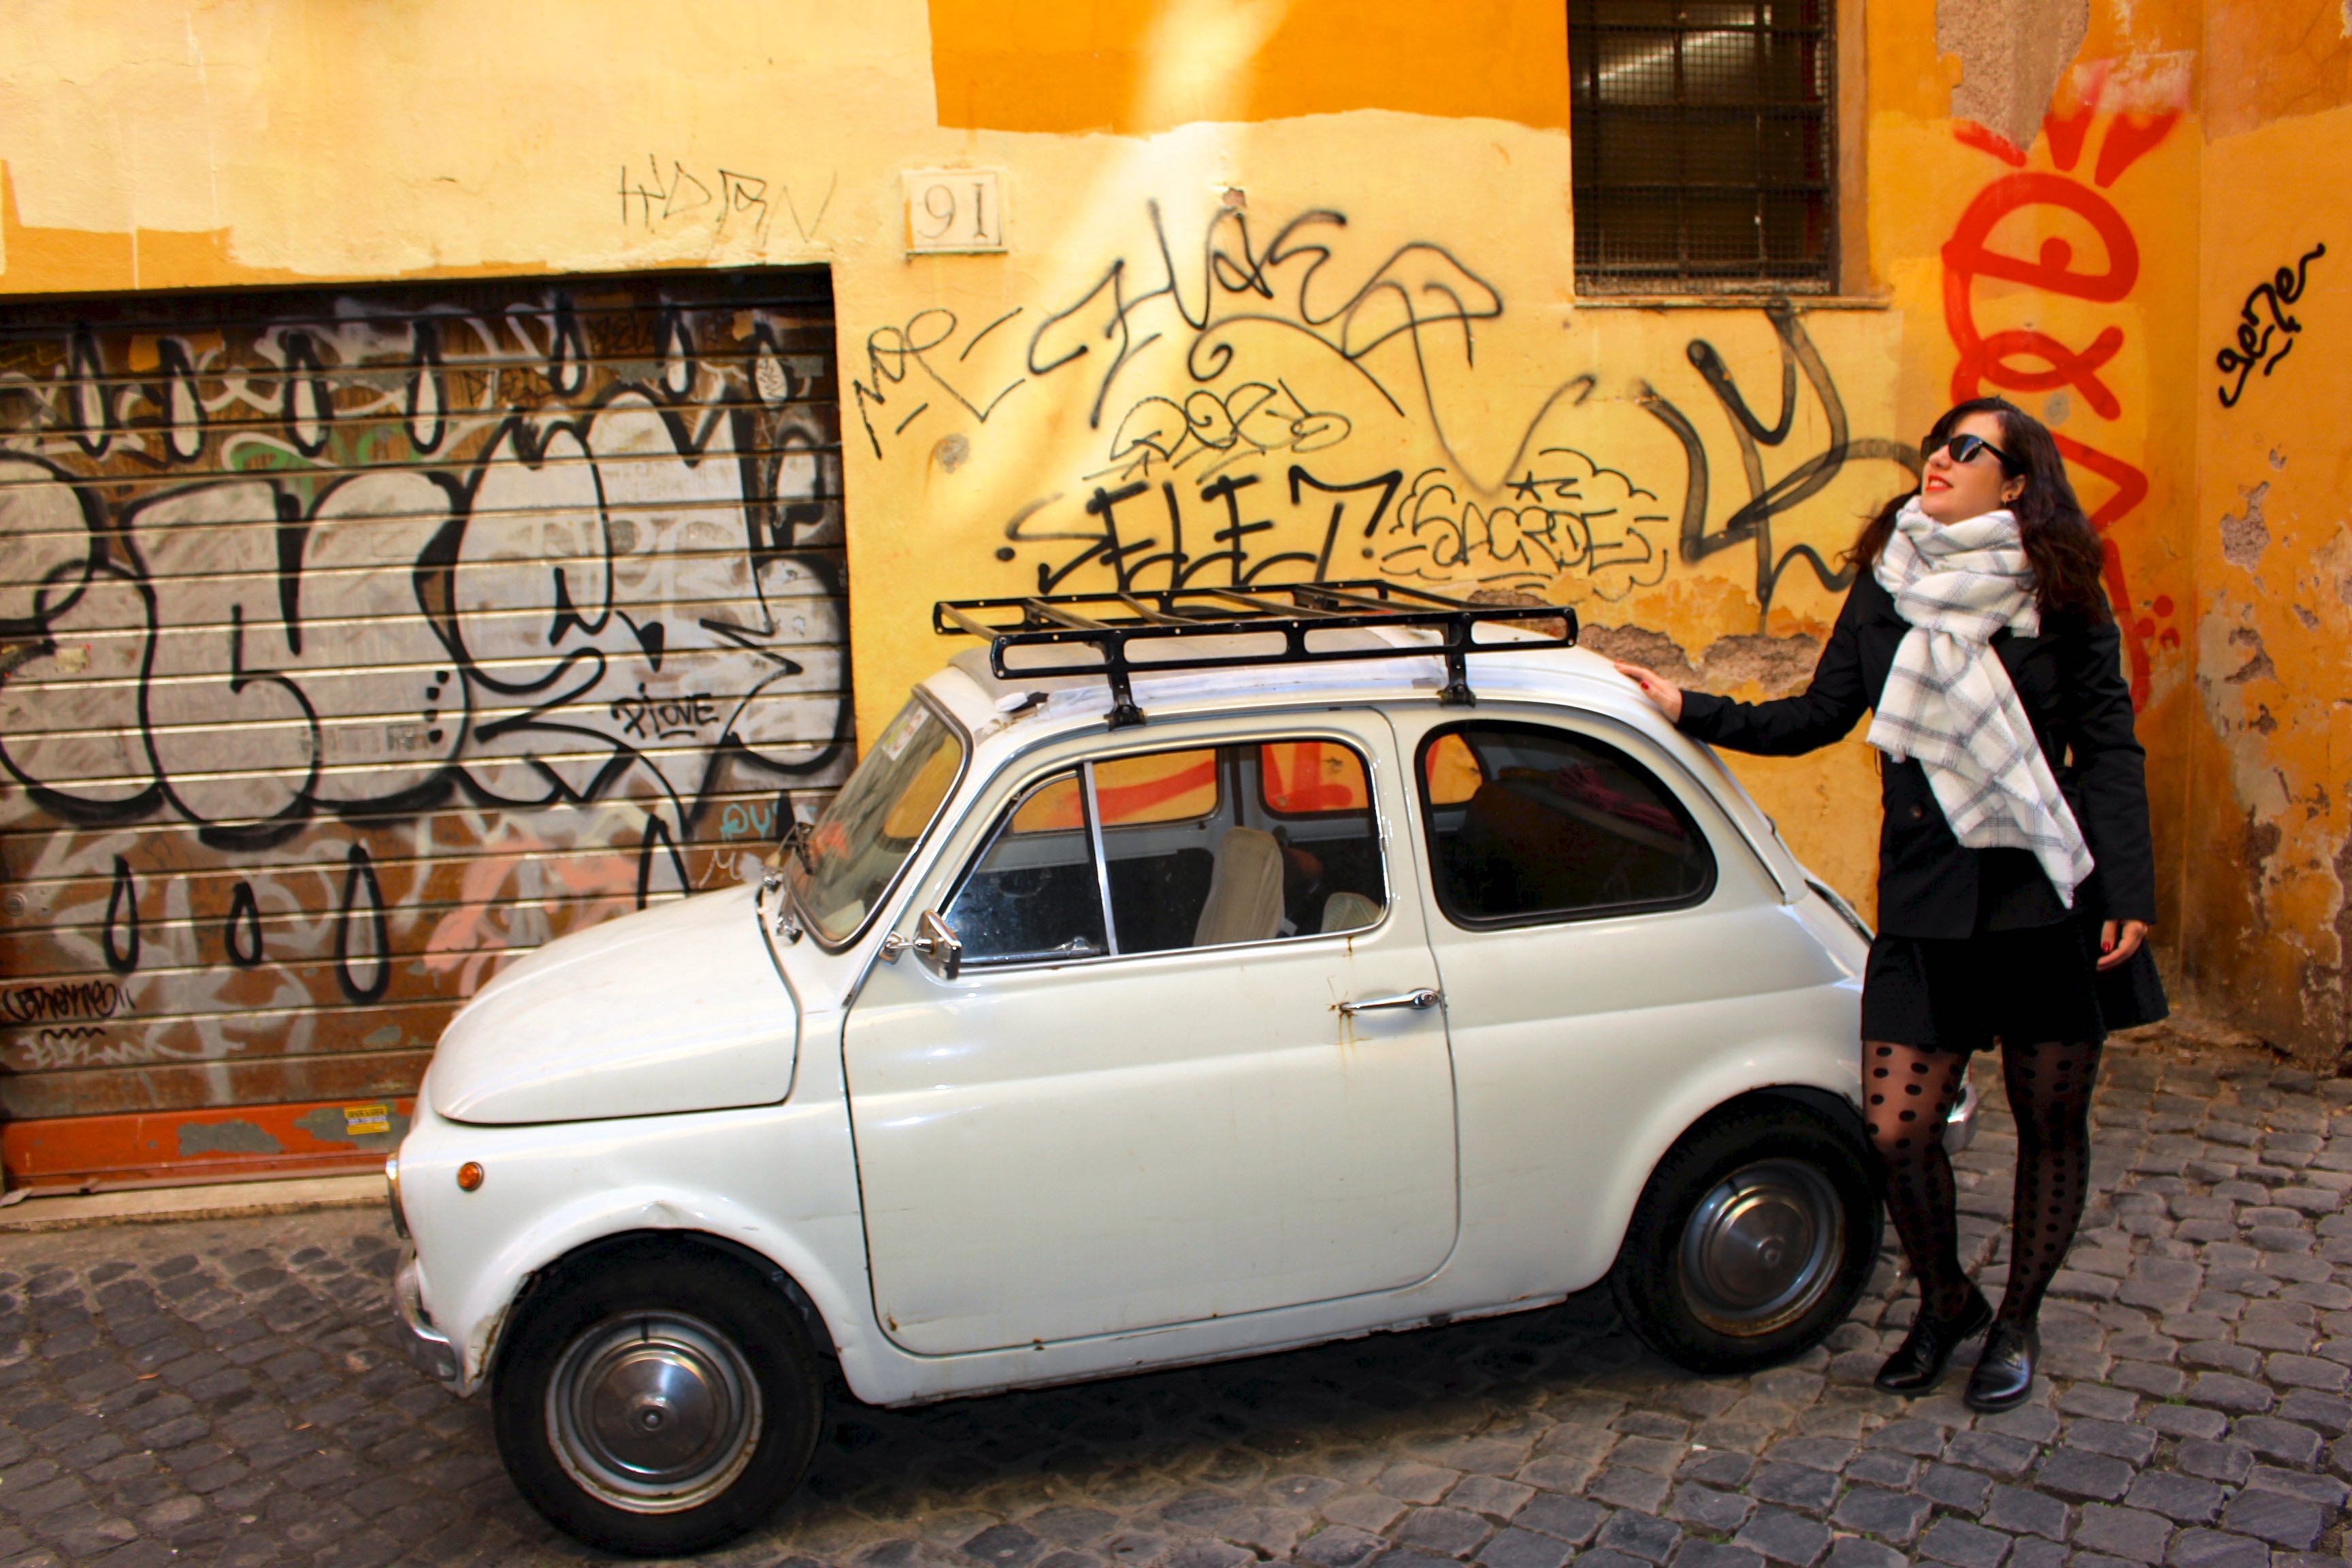 Rome city guide look 1 mademoiselle-e